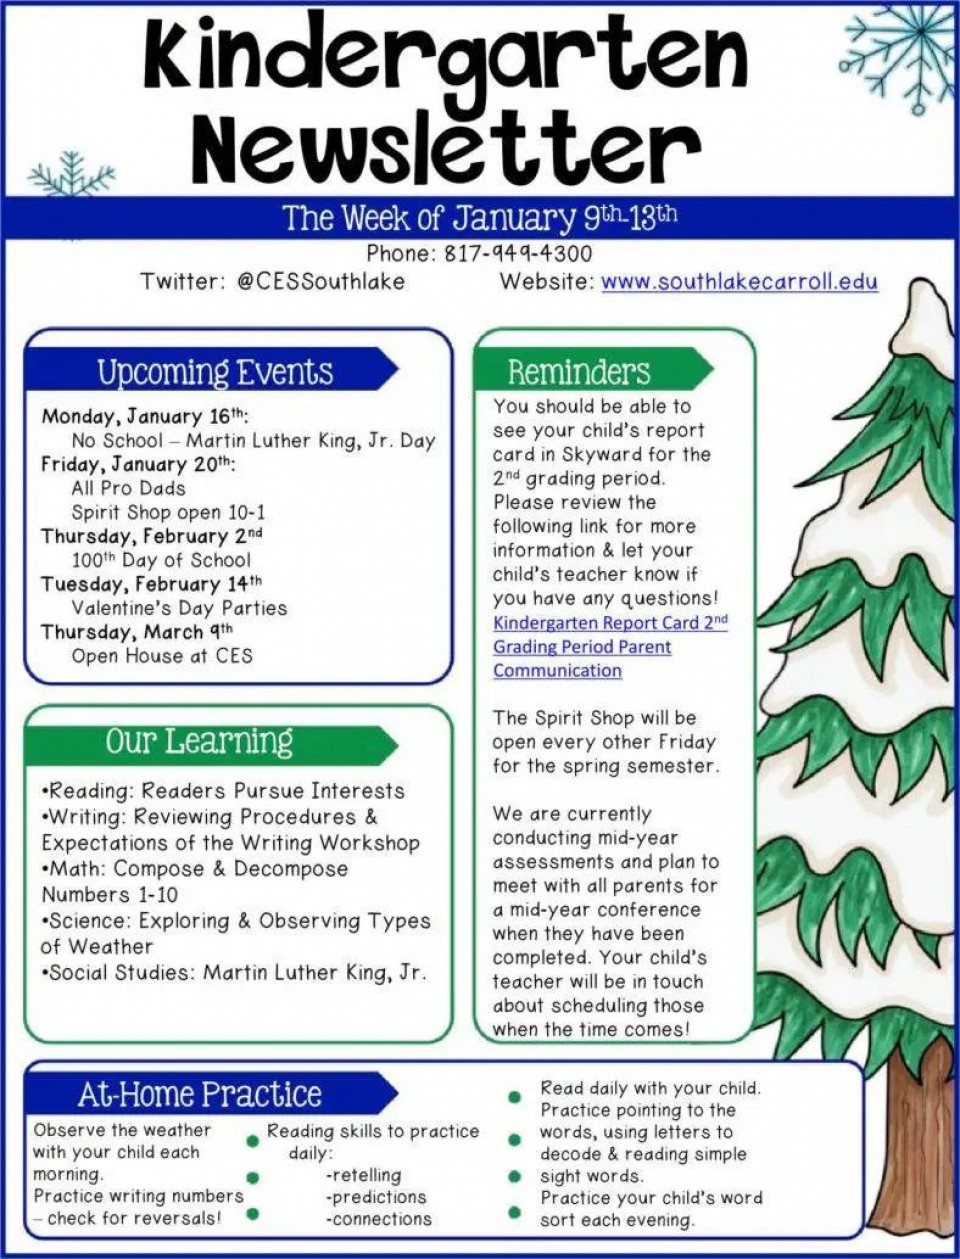 005 Stunning Free Newsletter Template For Teacher Example  Downloadable Editable Preschool960